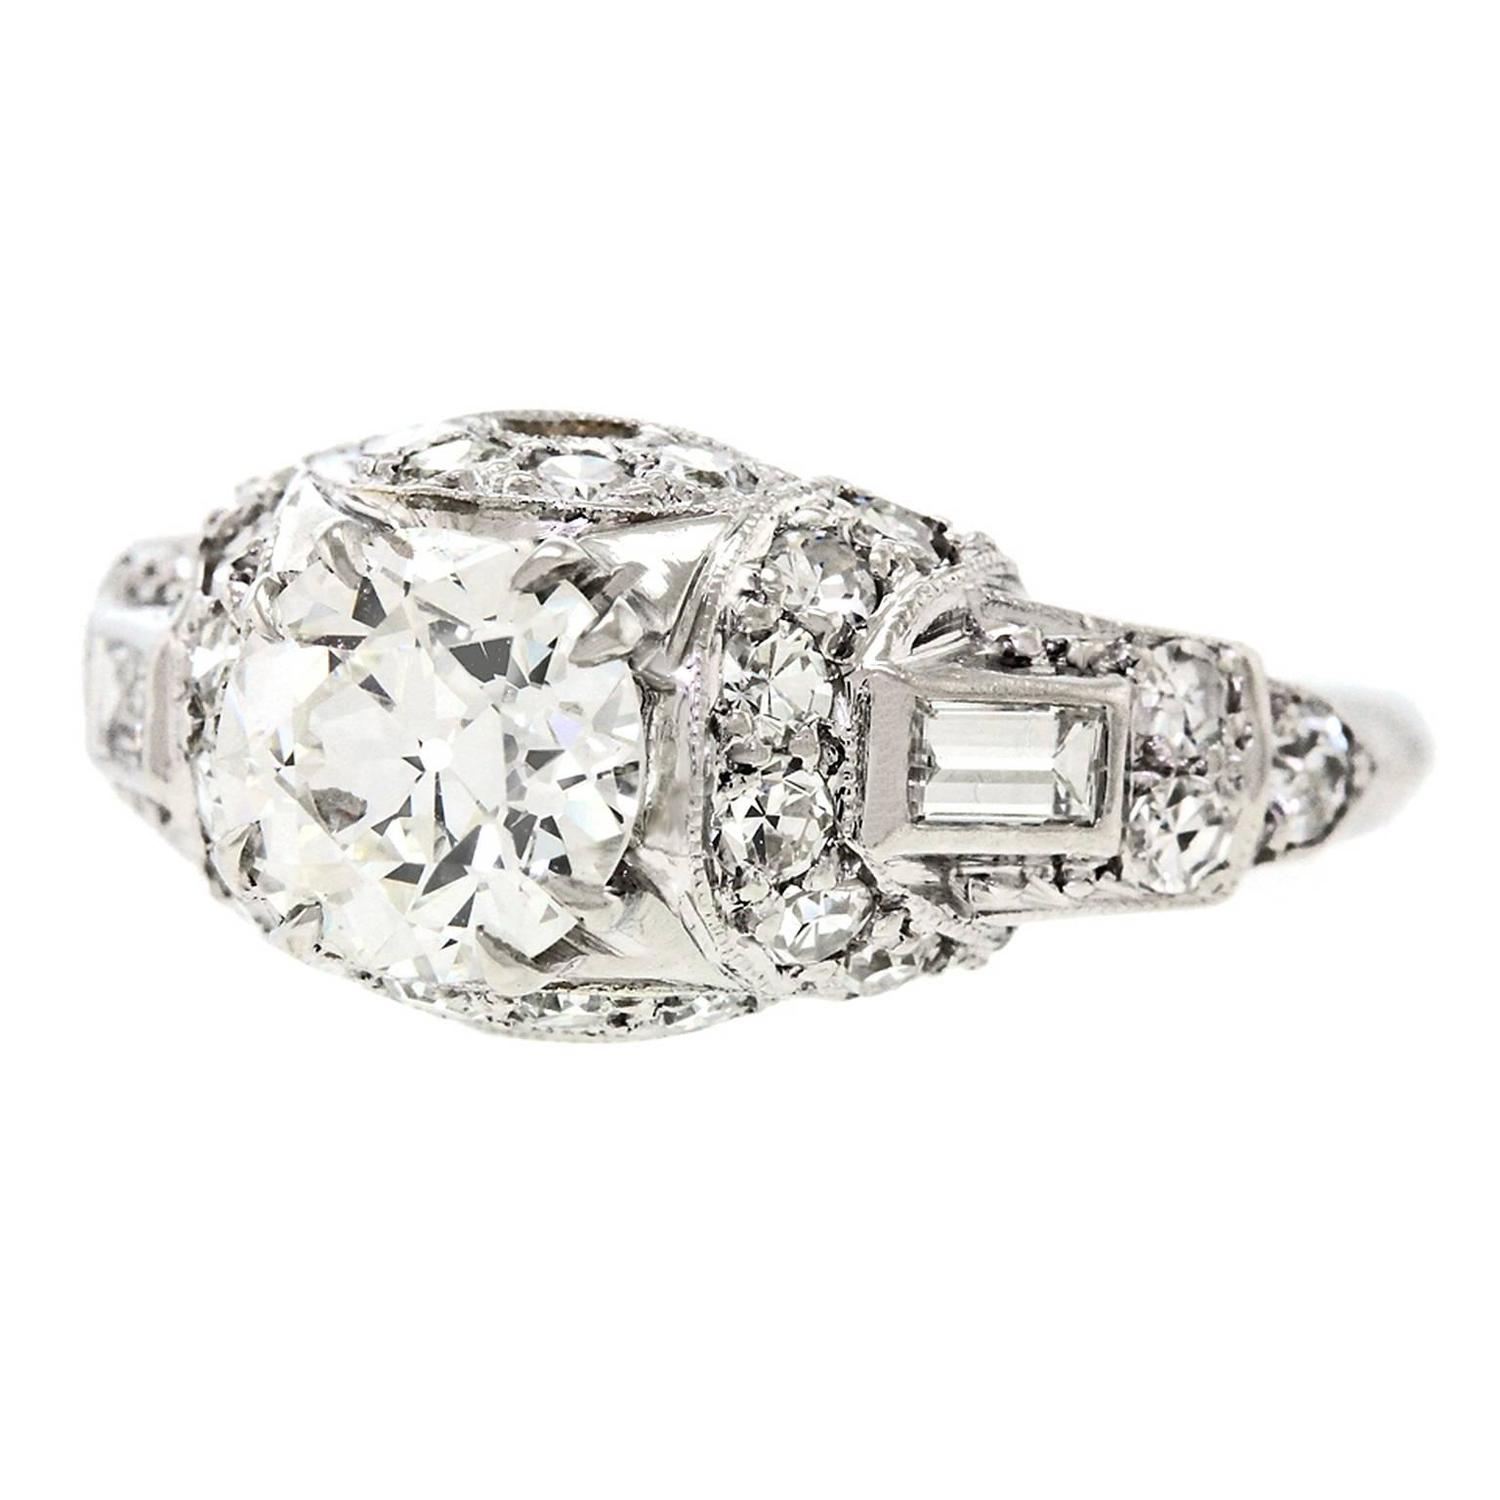 1920s deco platinum engagement ring for sale at 1stdibs